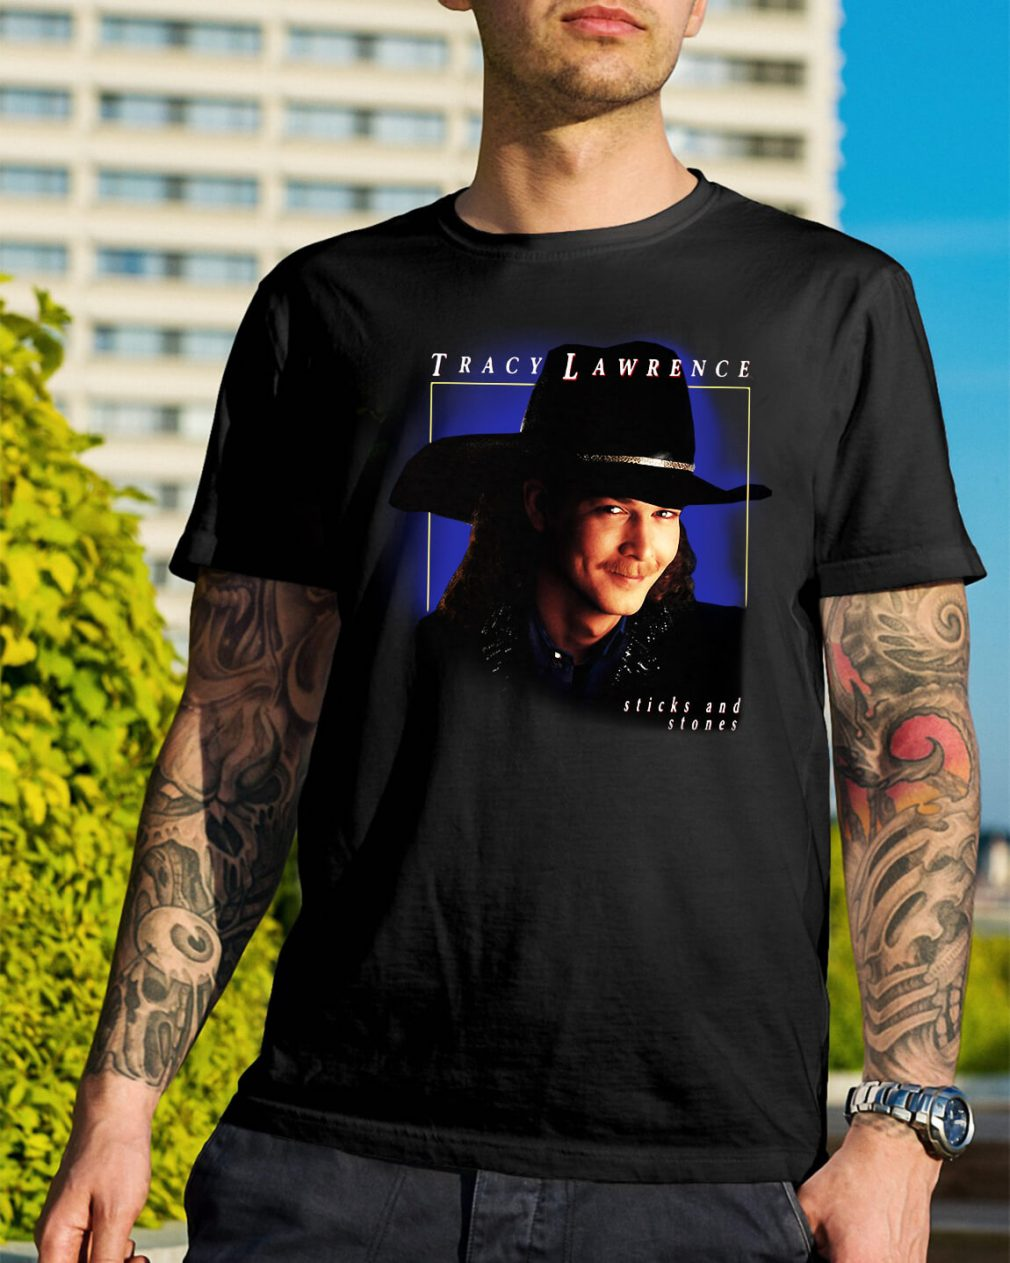 Tracy Lawrence sticks and stones shirt